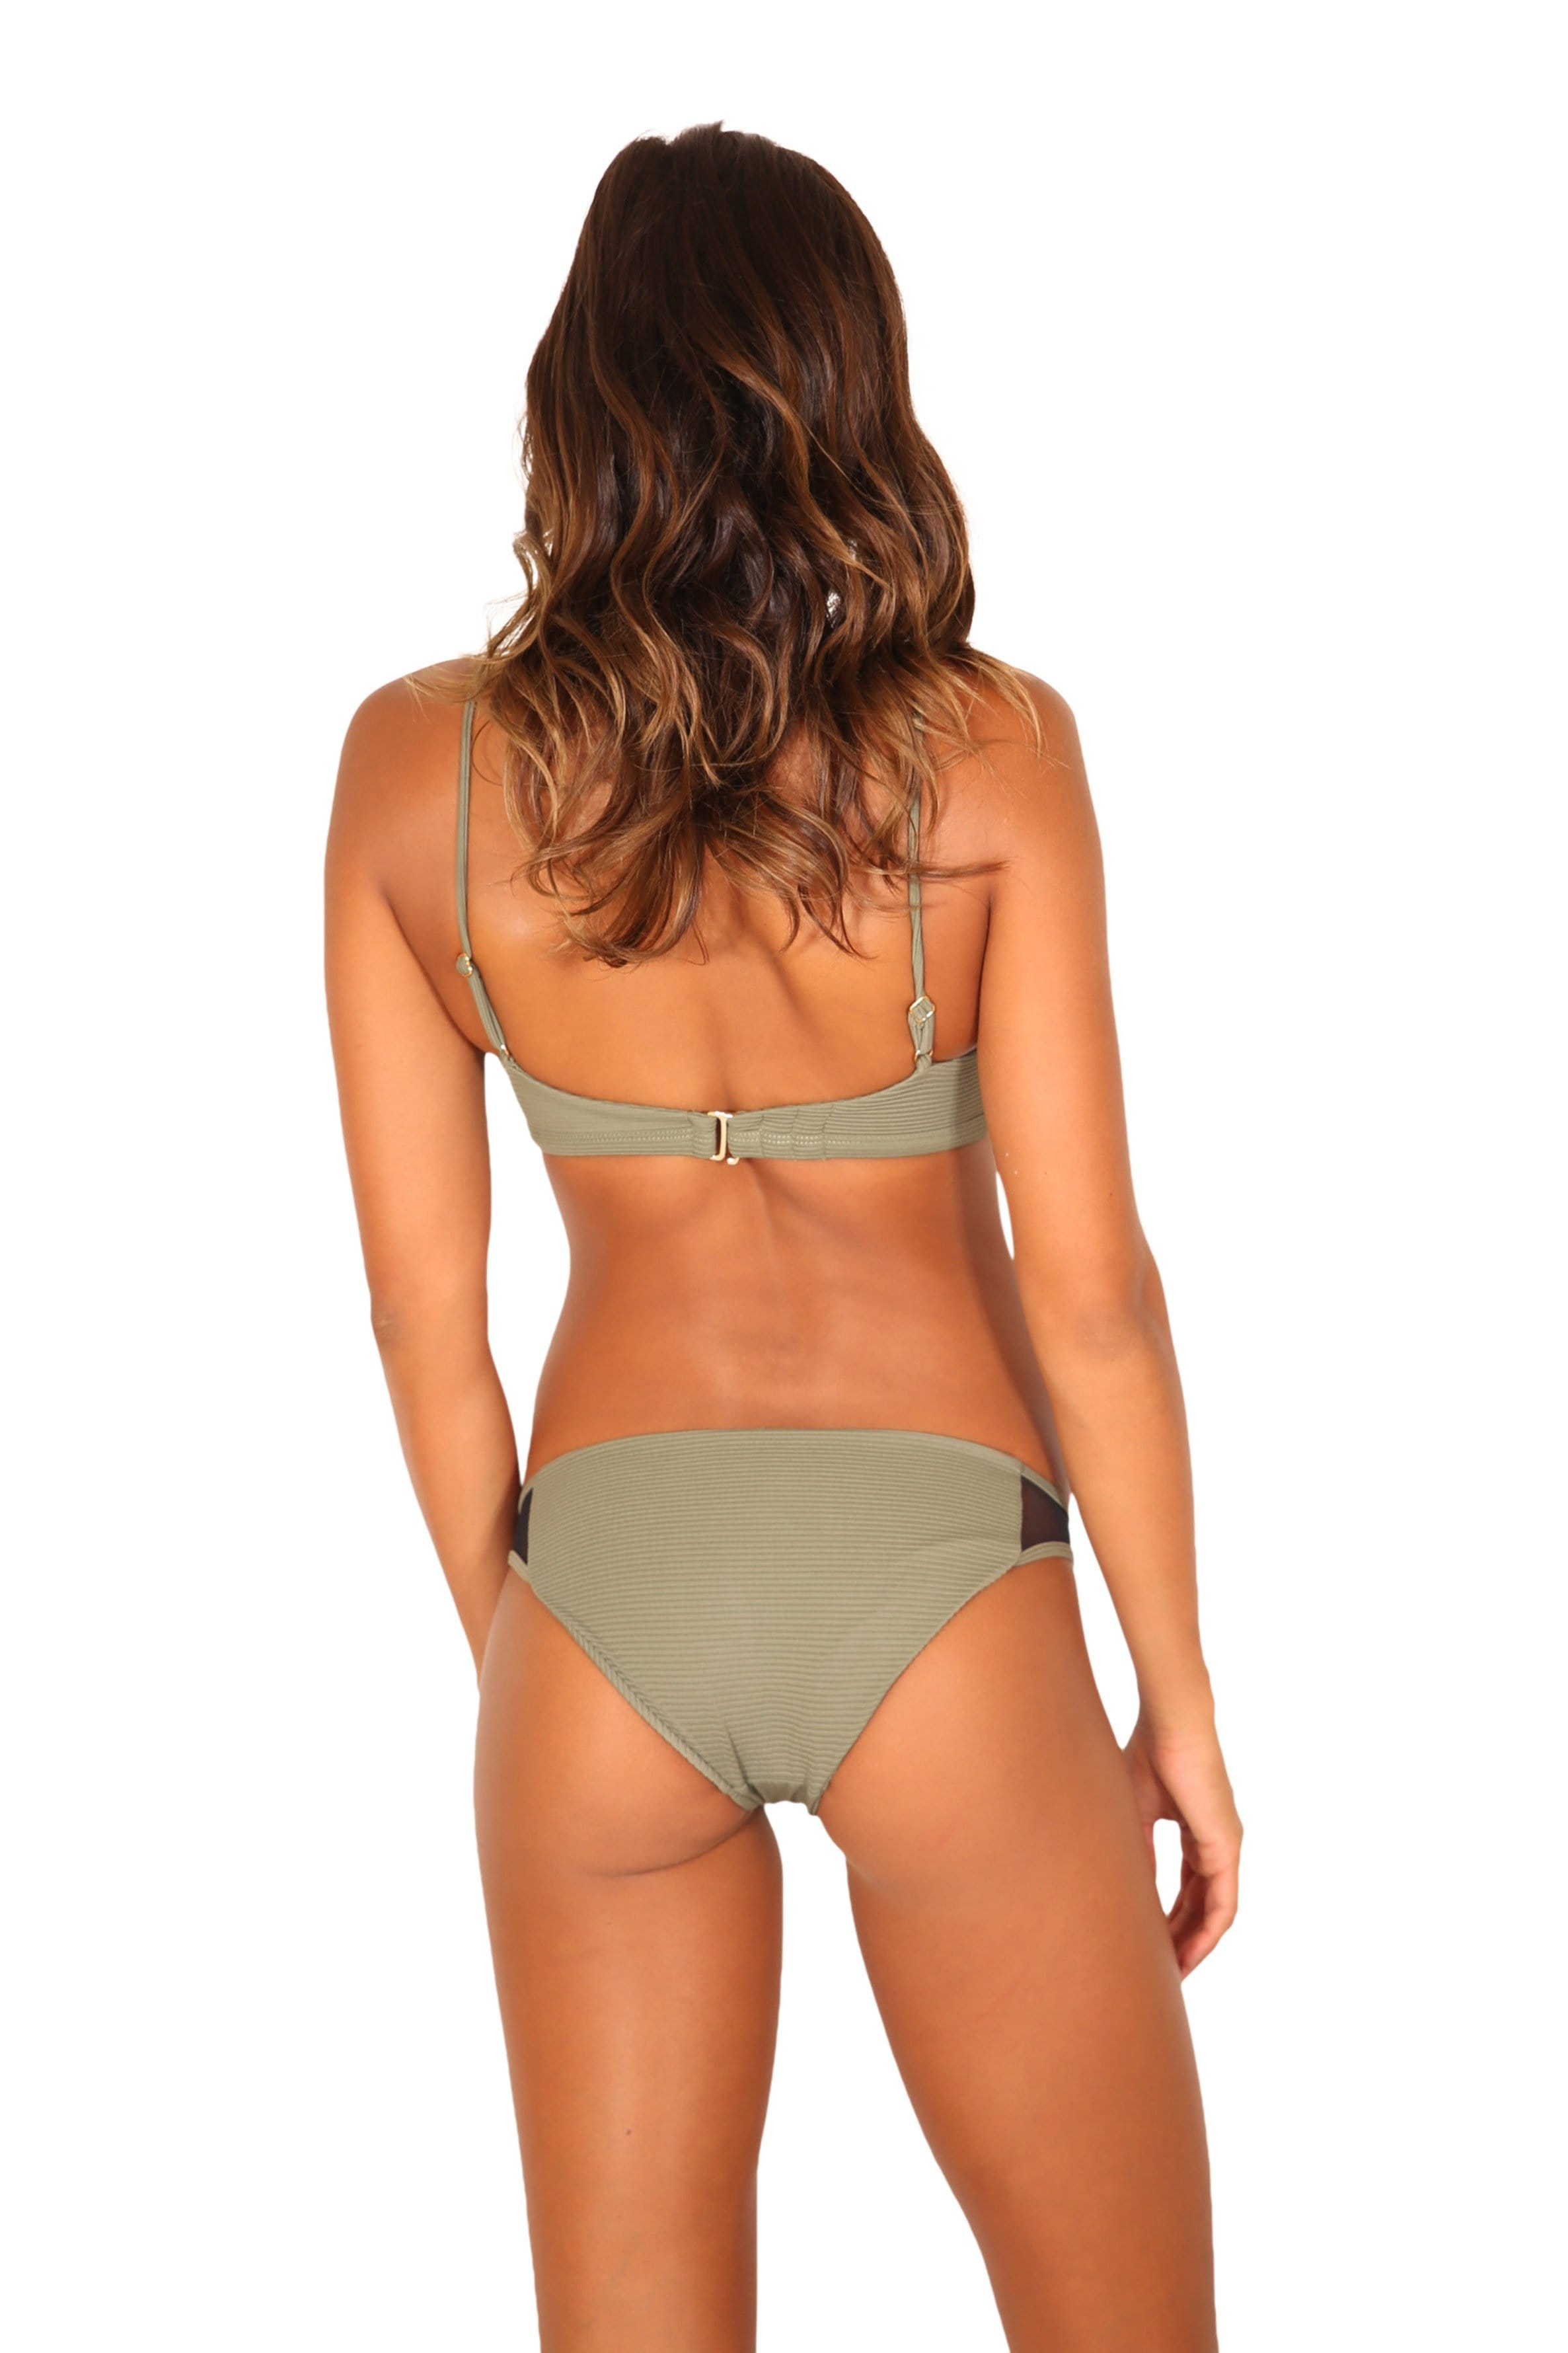 KAILI BOTTOM OLIVE RIB (FULL COVERAGE)